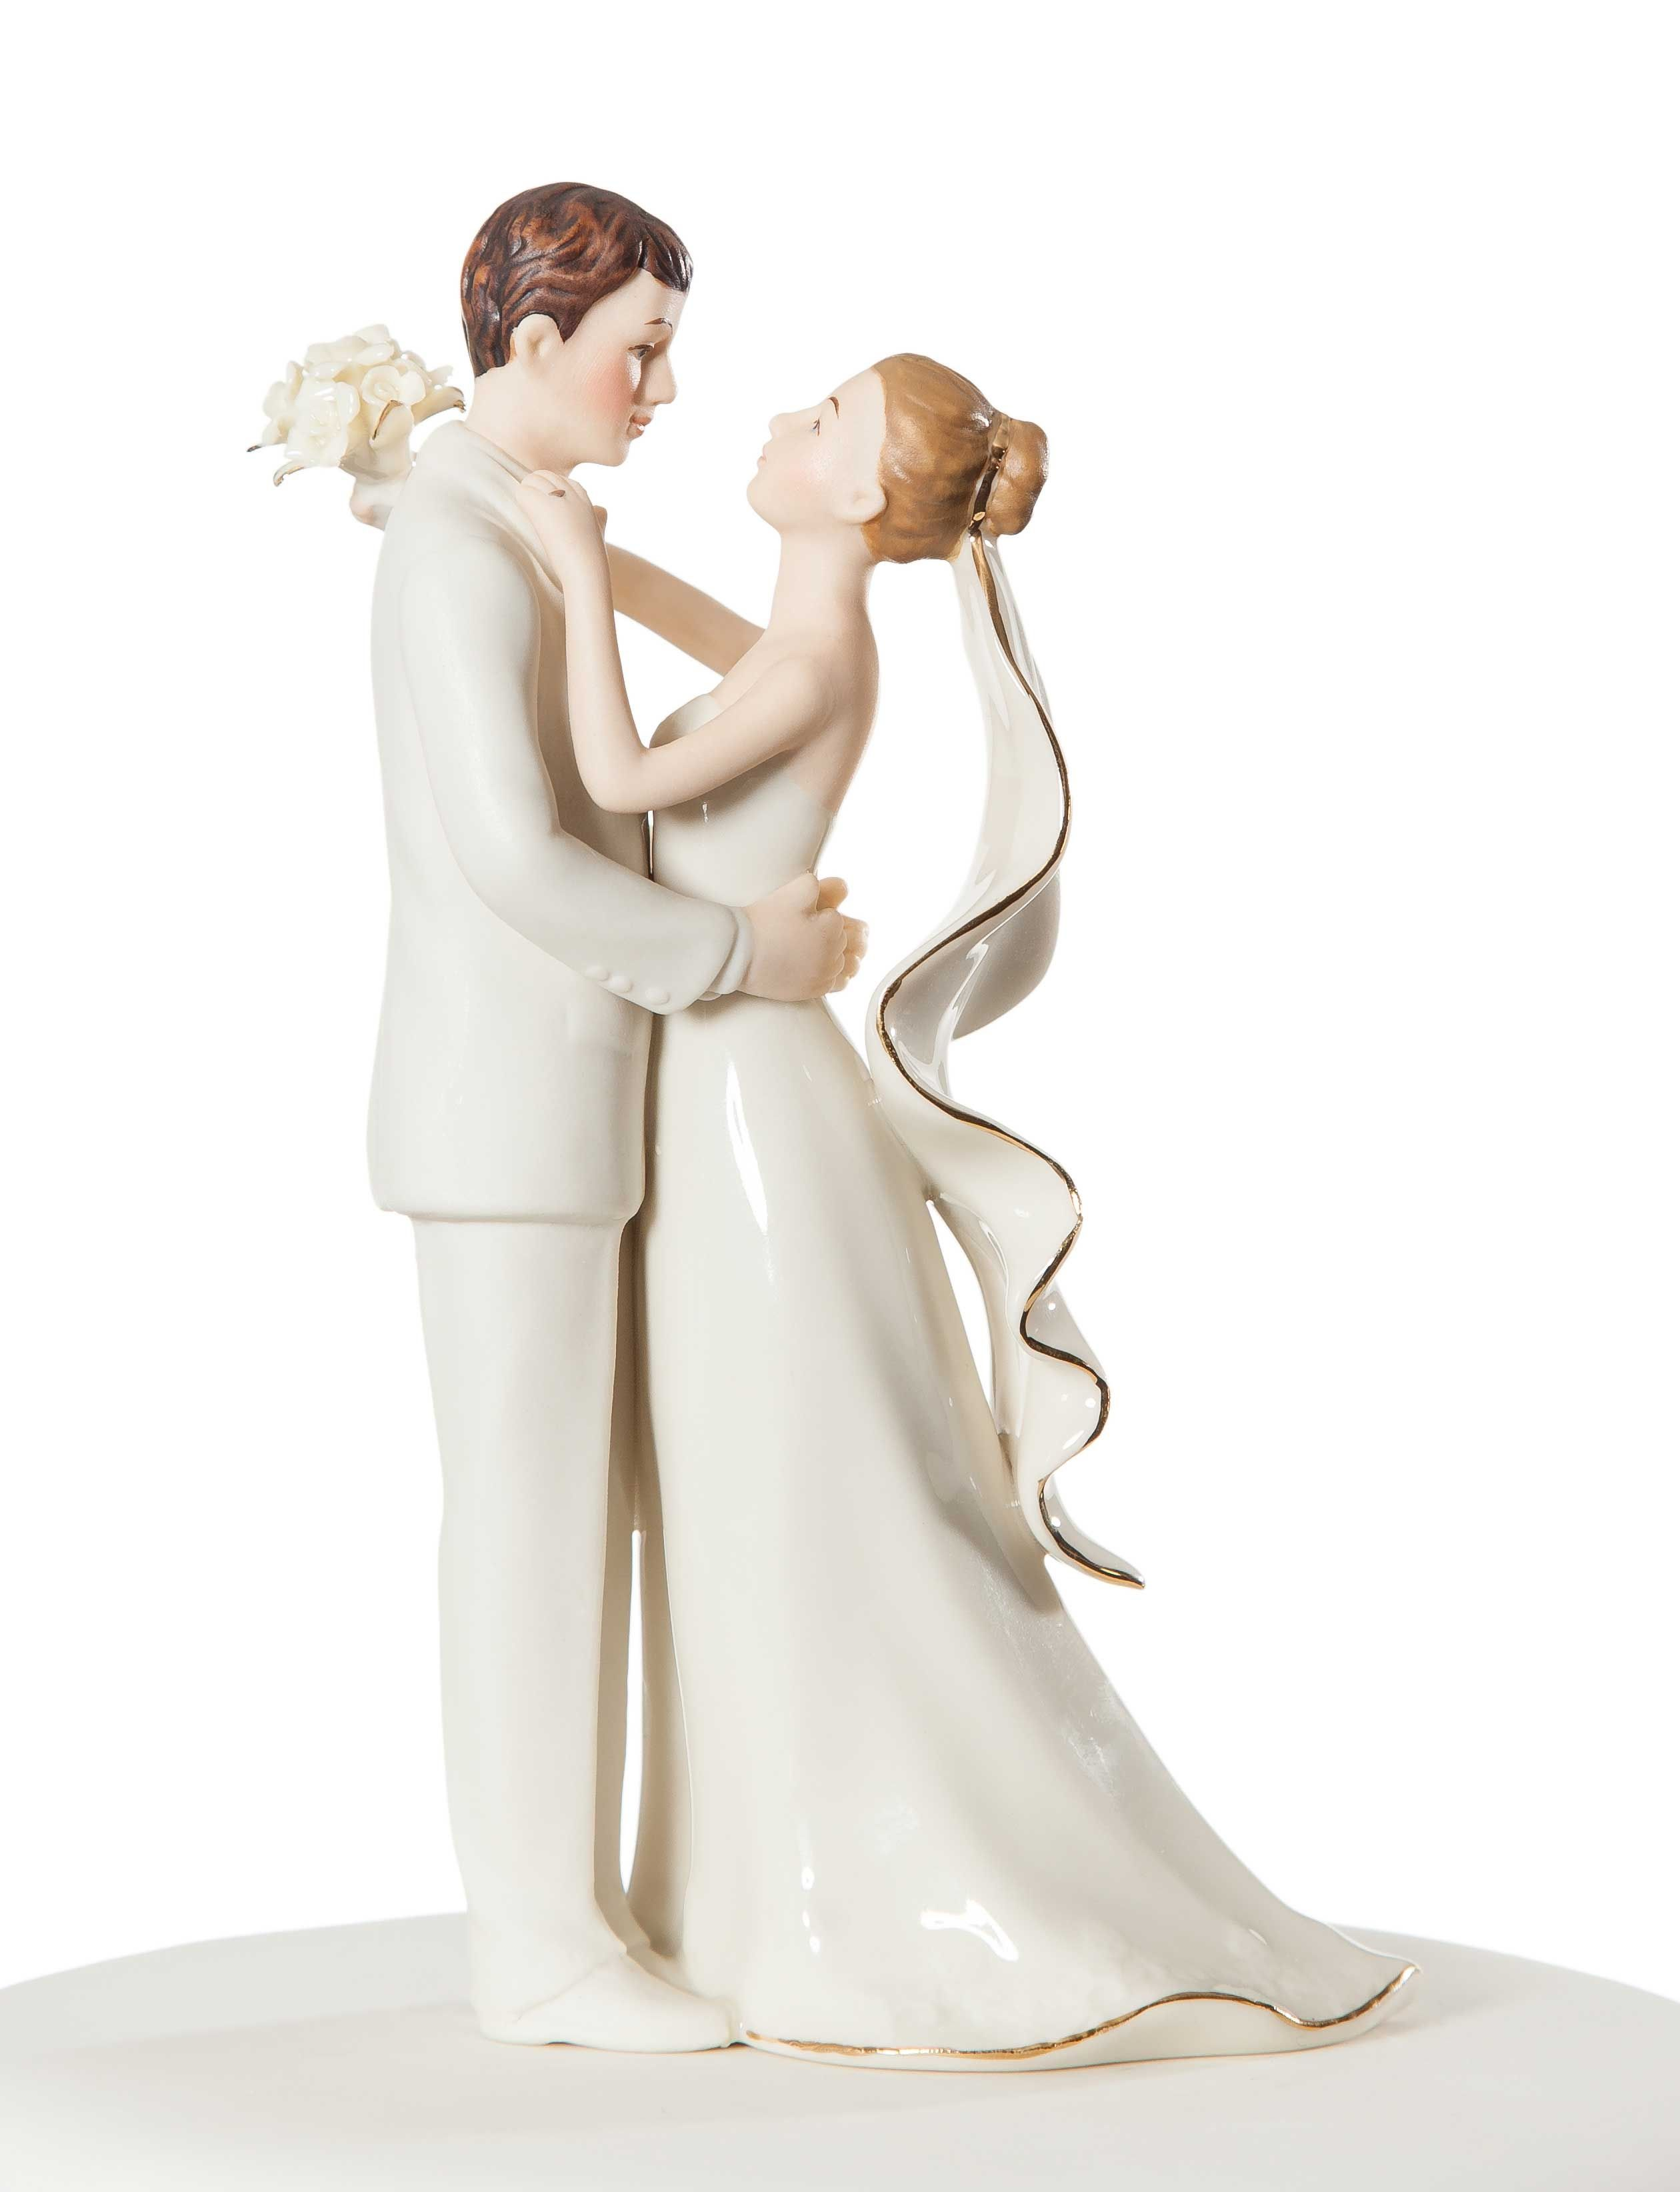 Off-White Porcelain Bride and Groom Wedding Cake Topper Figurine ...